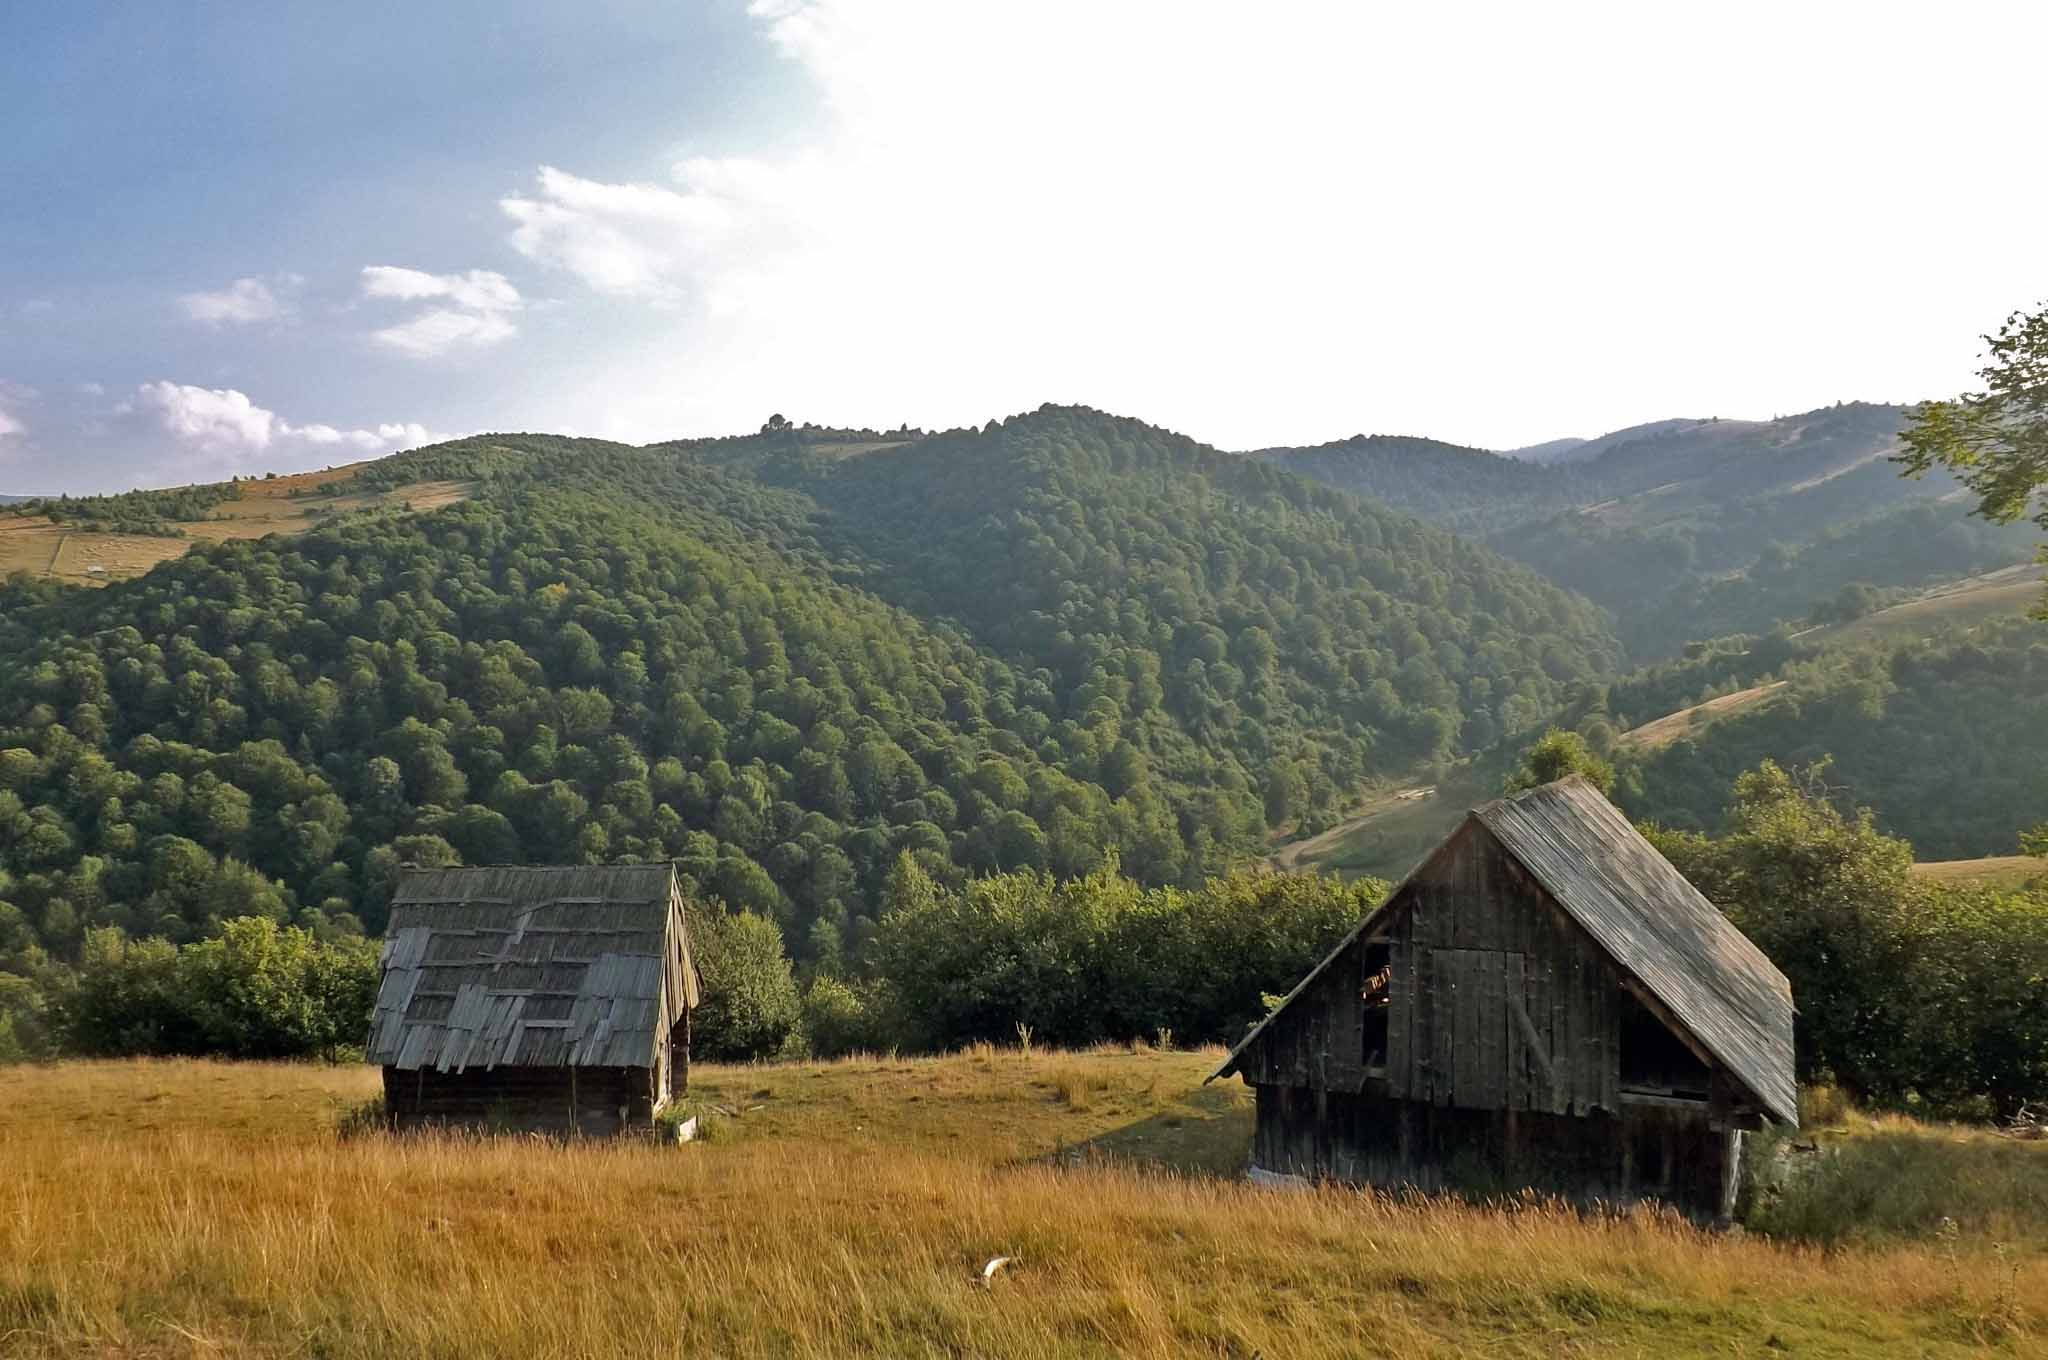 shepherds hut romania mountain shelter transylvania